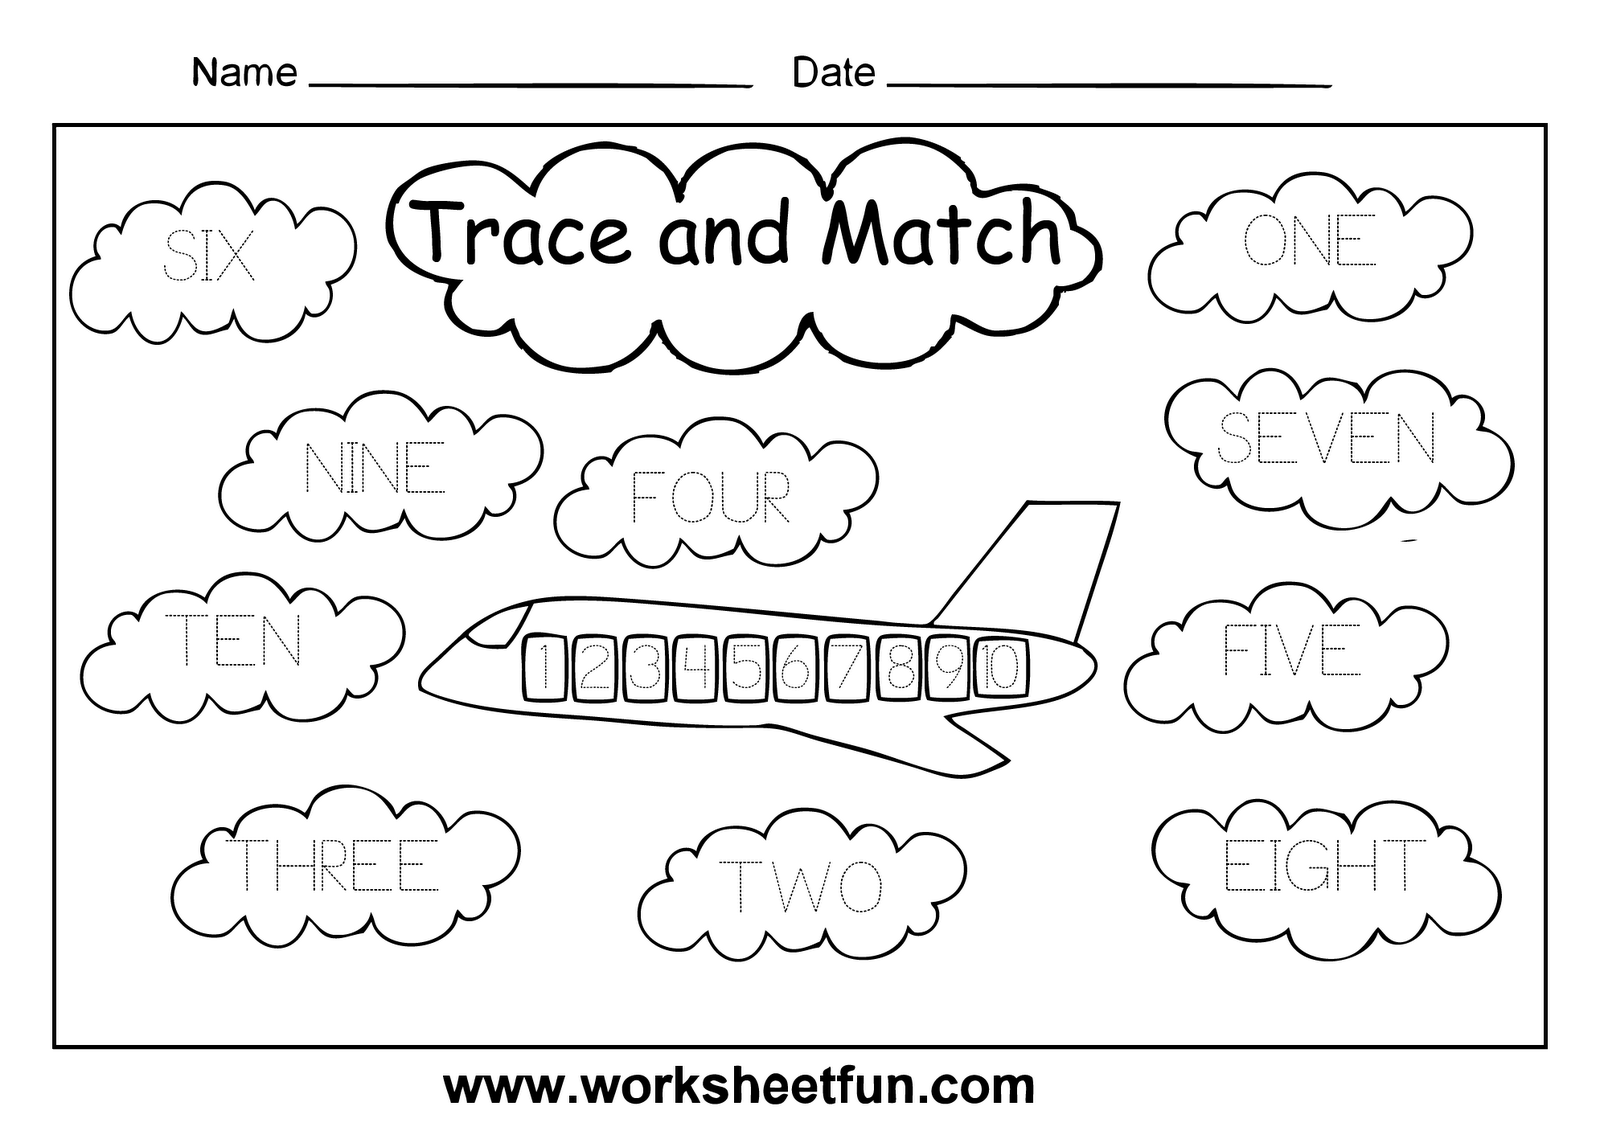 Weirdmailus  Winsome Numbers Worksheet    Narrativamente With Great Mathematic Worksheet For Kindergarten Besides Sight Word For Kindergarten Worksheets Furthermore Descriptive Paragraph Worksheets With Beautiful Worksheet On Measuring Angles Also Fun Noun Worksheets In Addition Other Words For Said Worksheet And Worksheets On Order Of Adjectives As Well As Pumpkin Cycle Worksheet Additionally Identifying Literary Elements Worksheet From Narrativamentecom With Weirdmailus  Great Numbers Worksheet    Narrativamente With Beautiful Mathematic Worksheet For Kindergarten Besides Sight Word For Kindergarten Worksheets Furthermore Descriptive Paragraph Worksheets And Winsome Worksheet On Measuring Angles Also Fun Noun Worksheets In Addition Other Words For Said Worksheet From Narrativamentecom